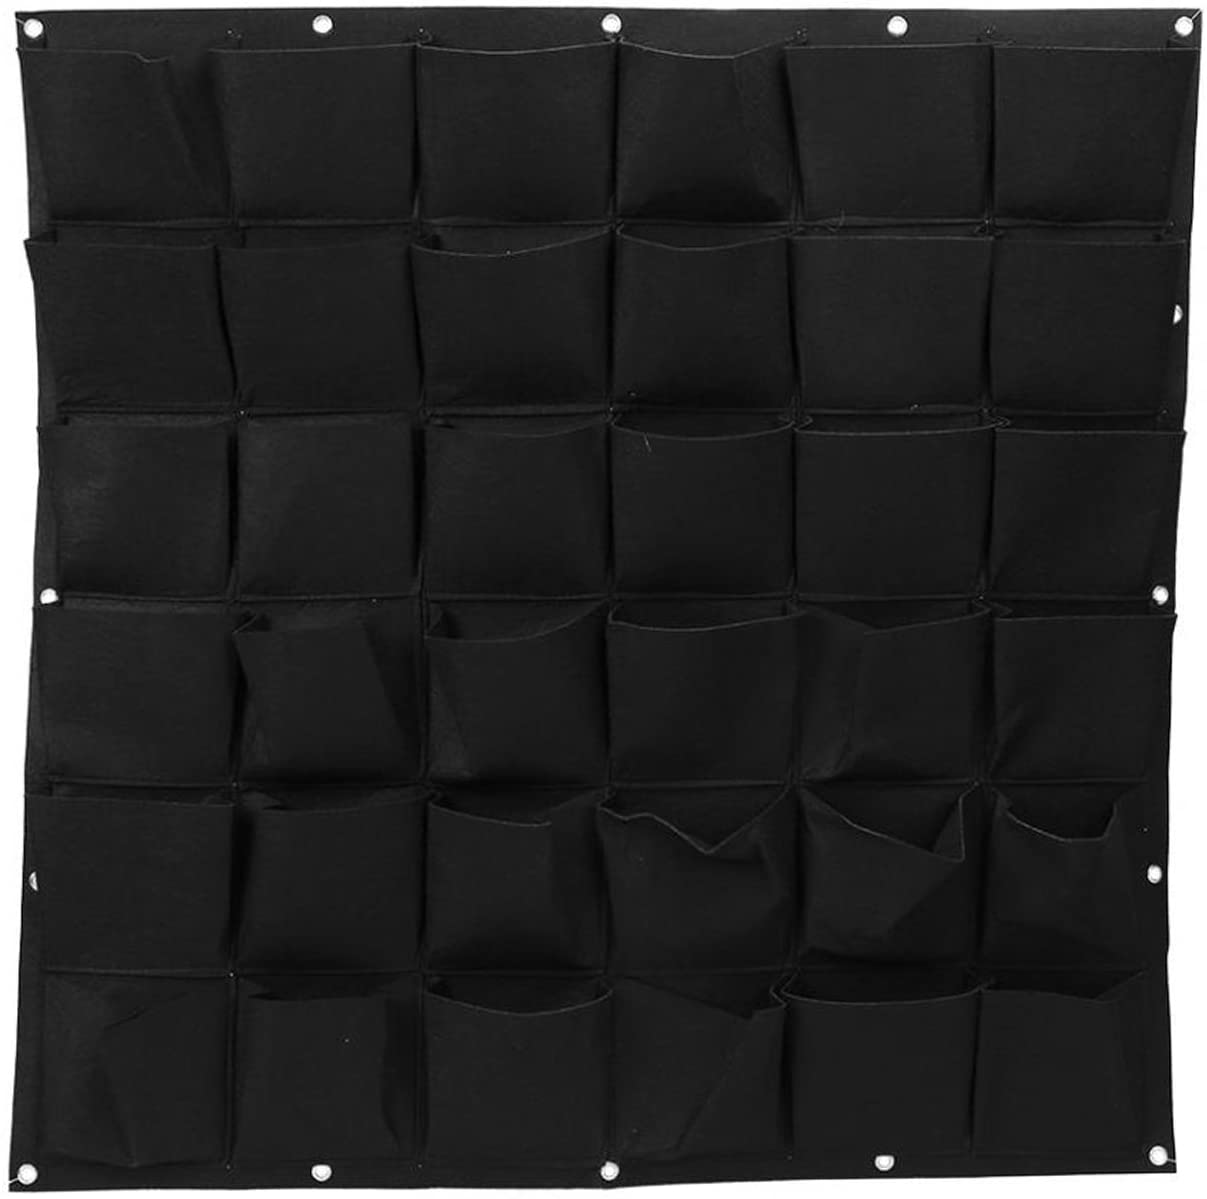 Ogrmar 36 Pockets Vertical Wall Garden Planter Plant Grow Bag for Flower Vegetable for Indoor/Outdoor (36 Pockets, Black)